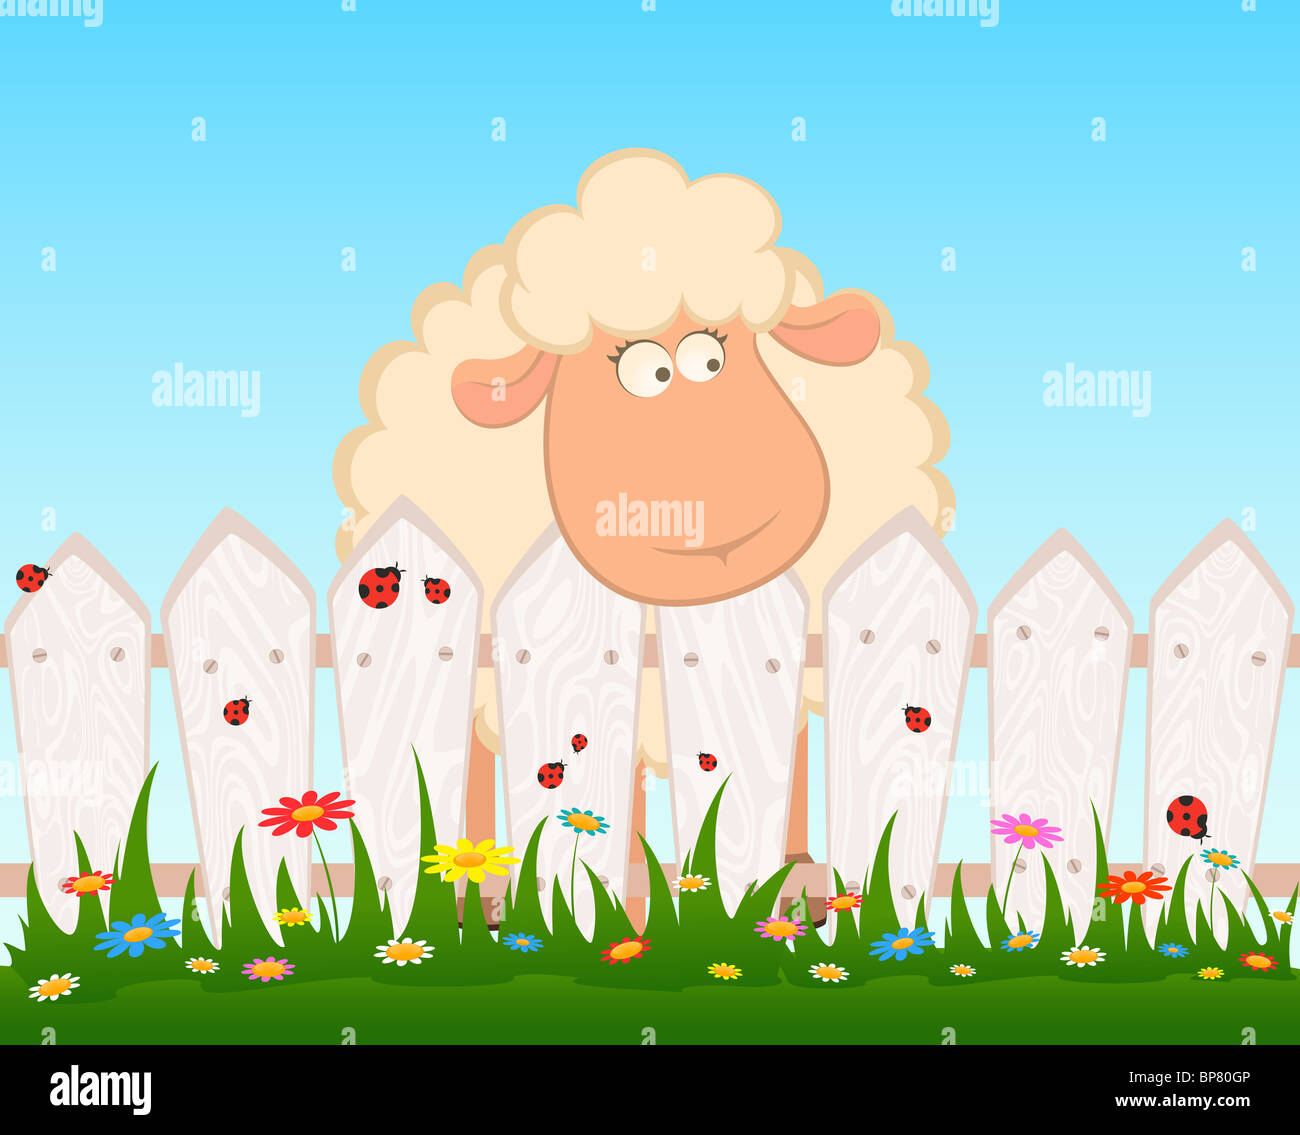 Cartoon smiling sheep after a fence - Stock Image